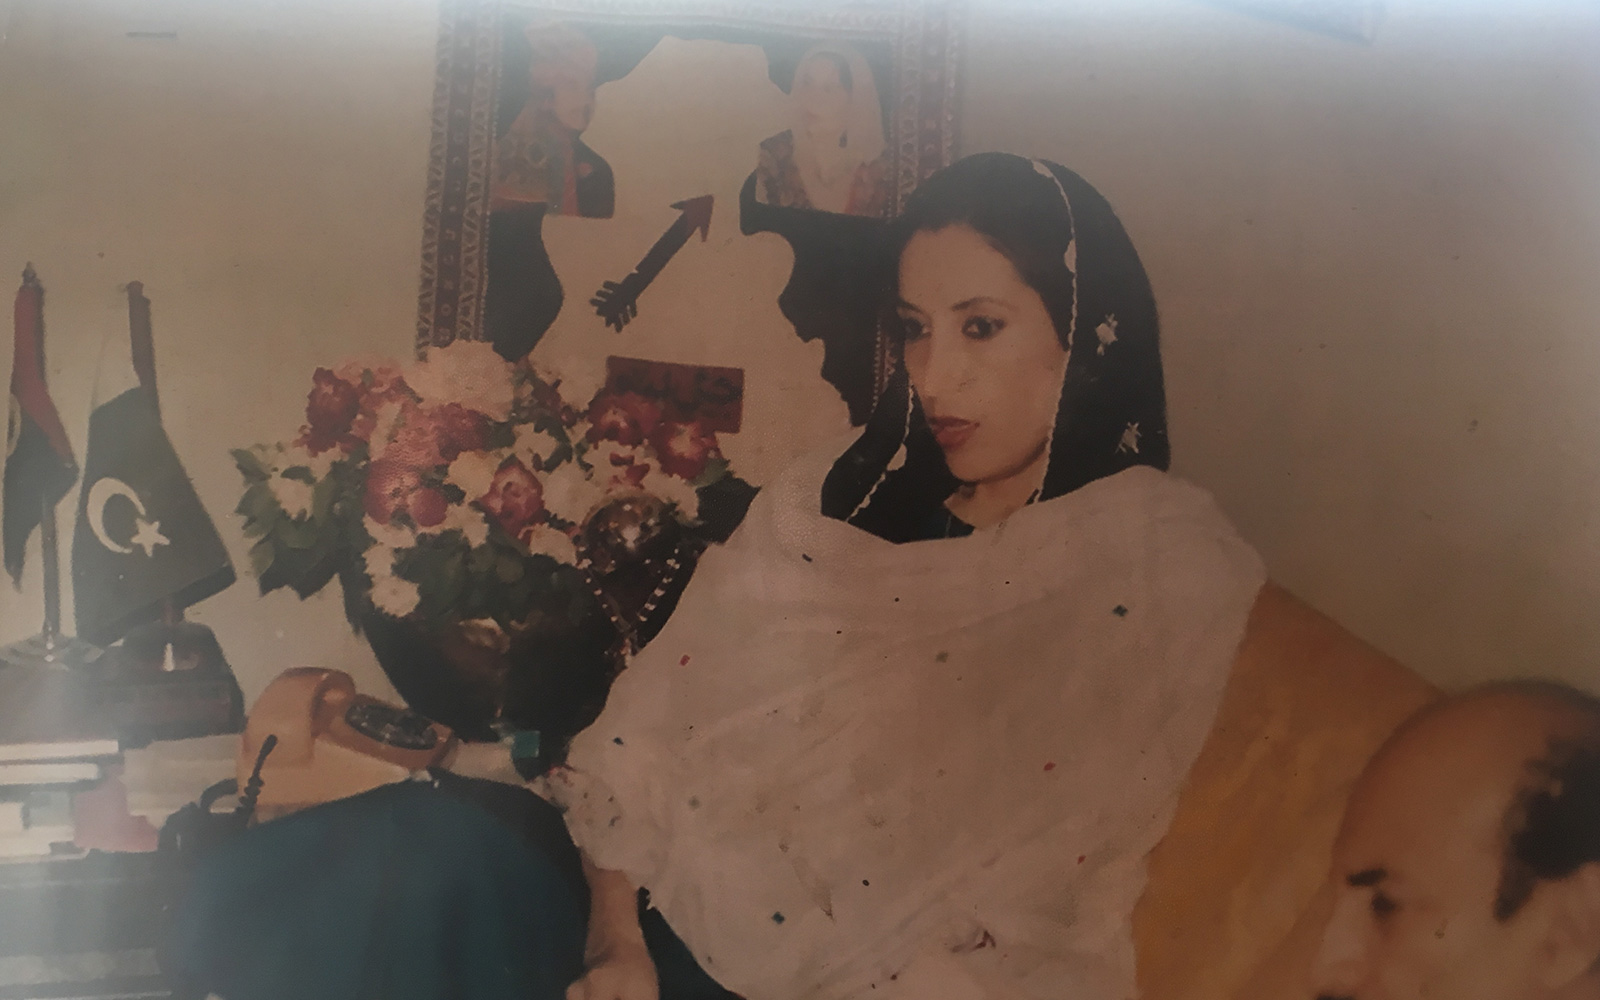 Benazir bhutto autopsy photos Aftermath of an Assassination - Photo Essays - TIME